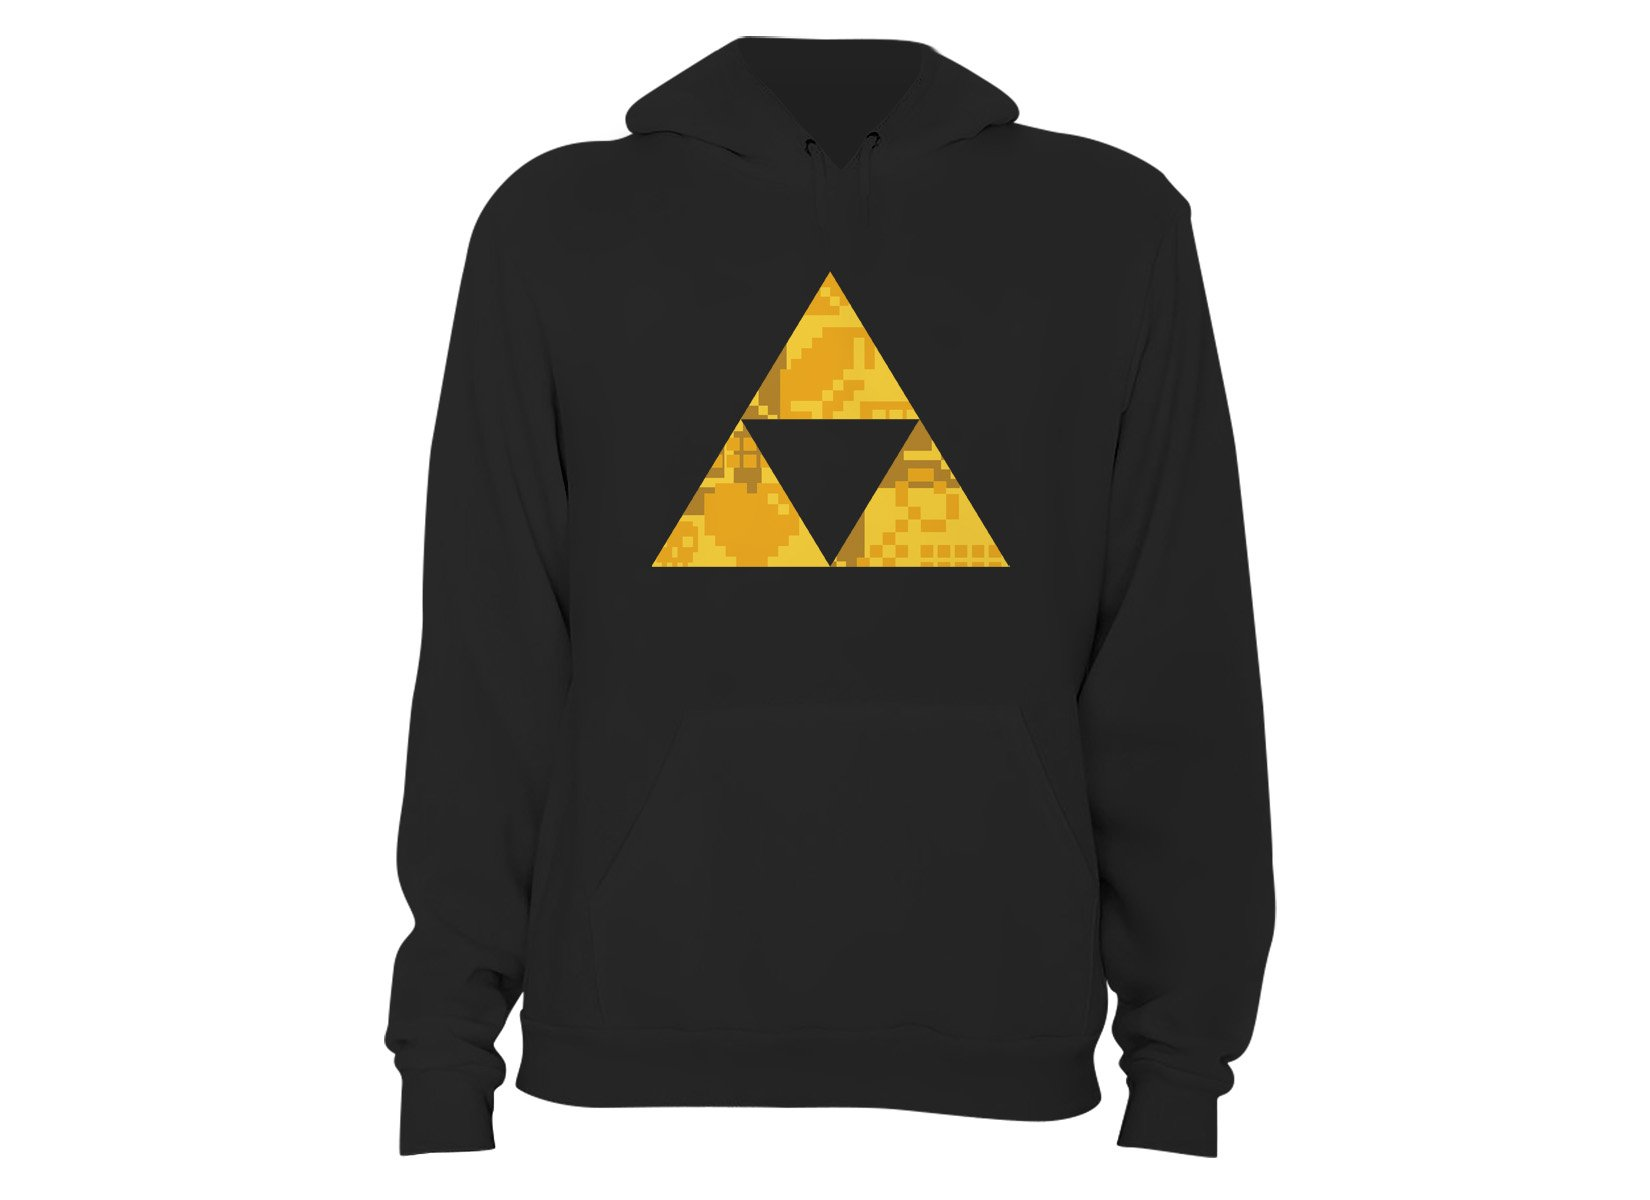 Triforce on Hoodie